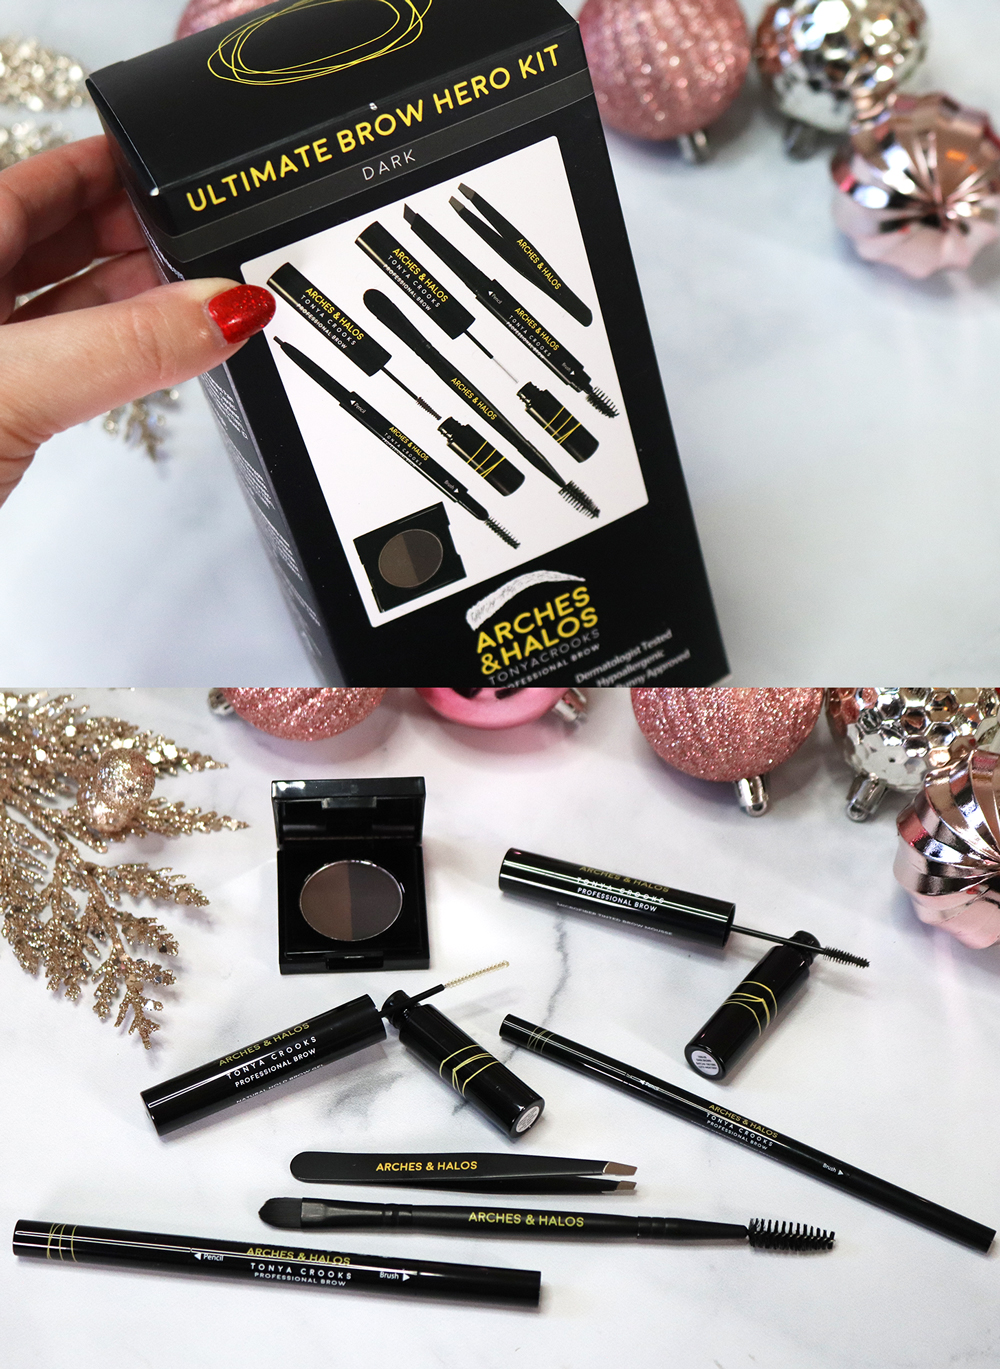 Cruelty Free Holiday Gift Guide 2020 - Arches and Halos Ultimate Brow Hero Kit